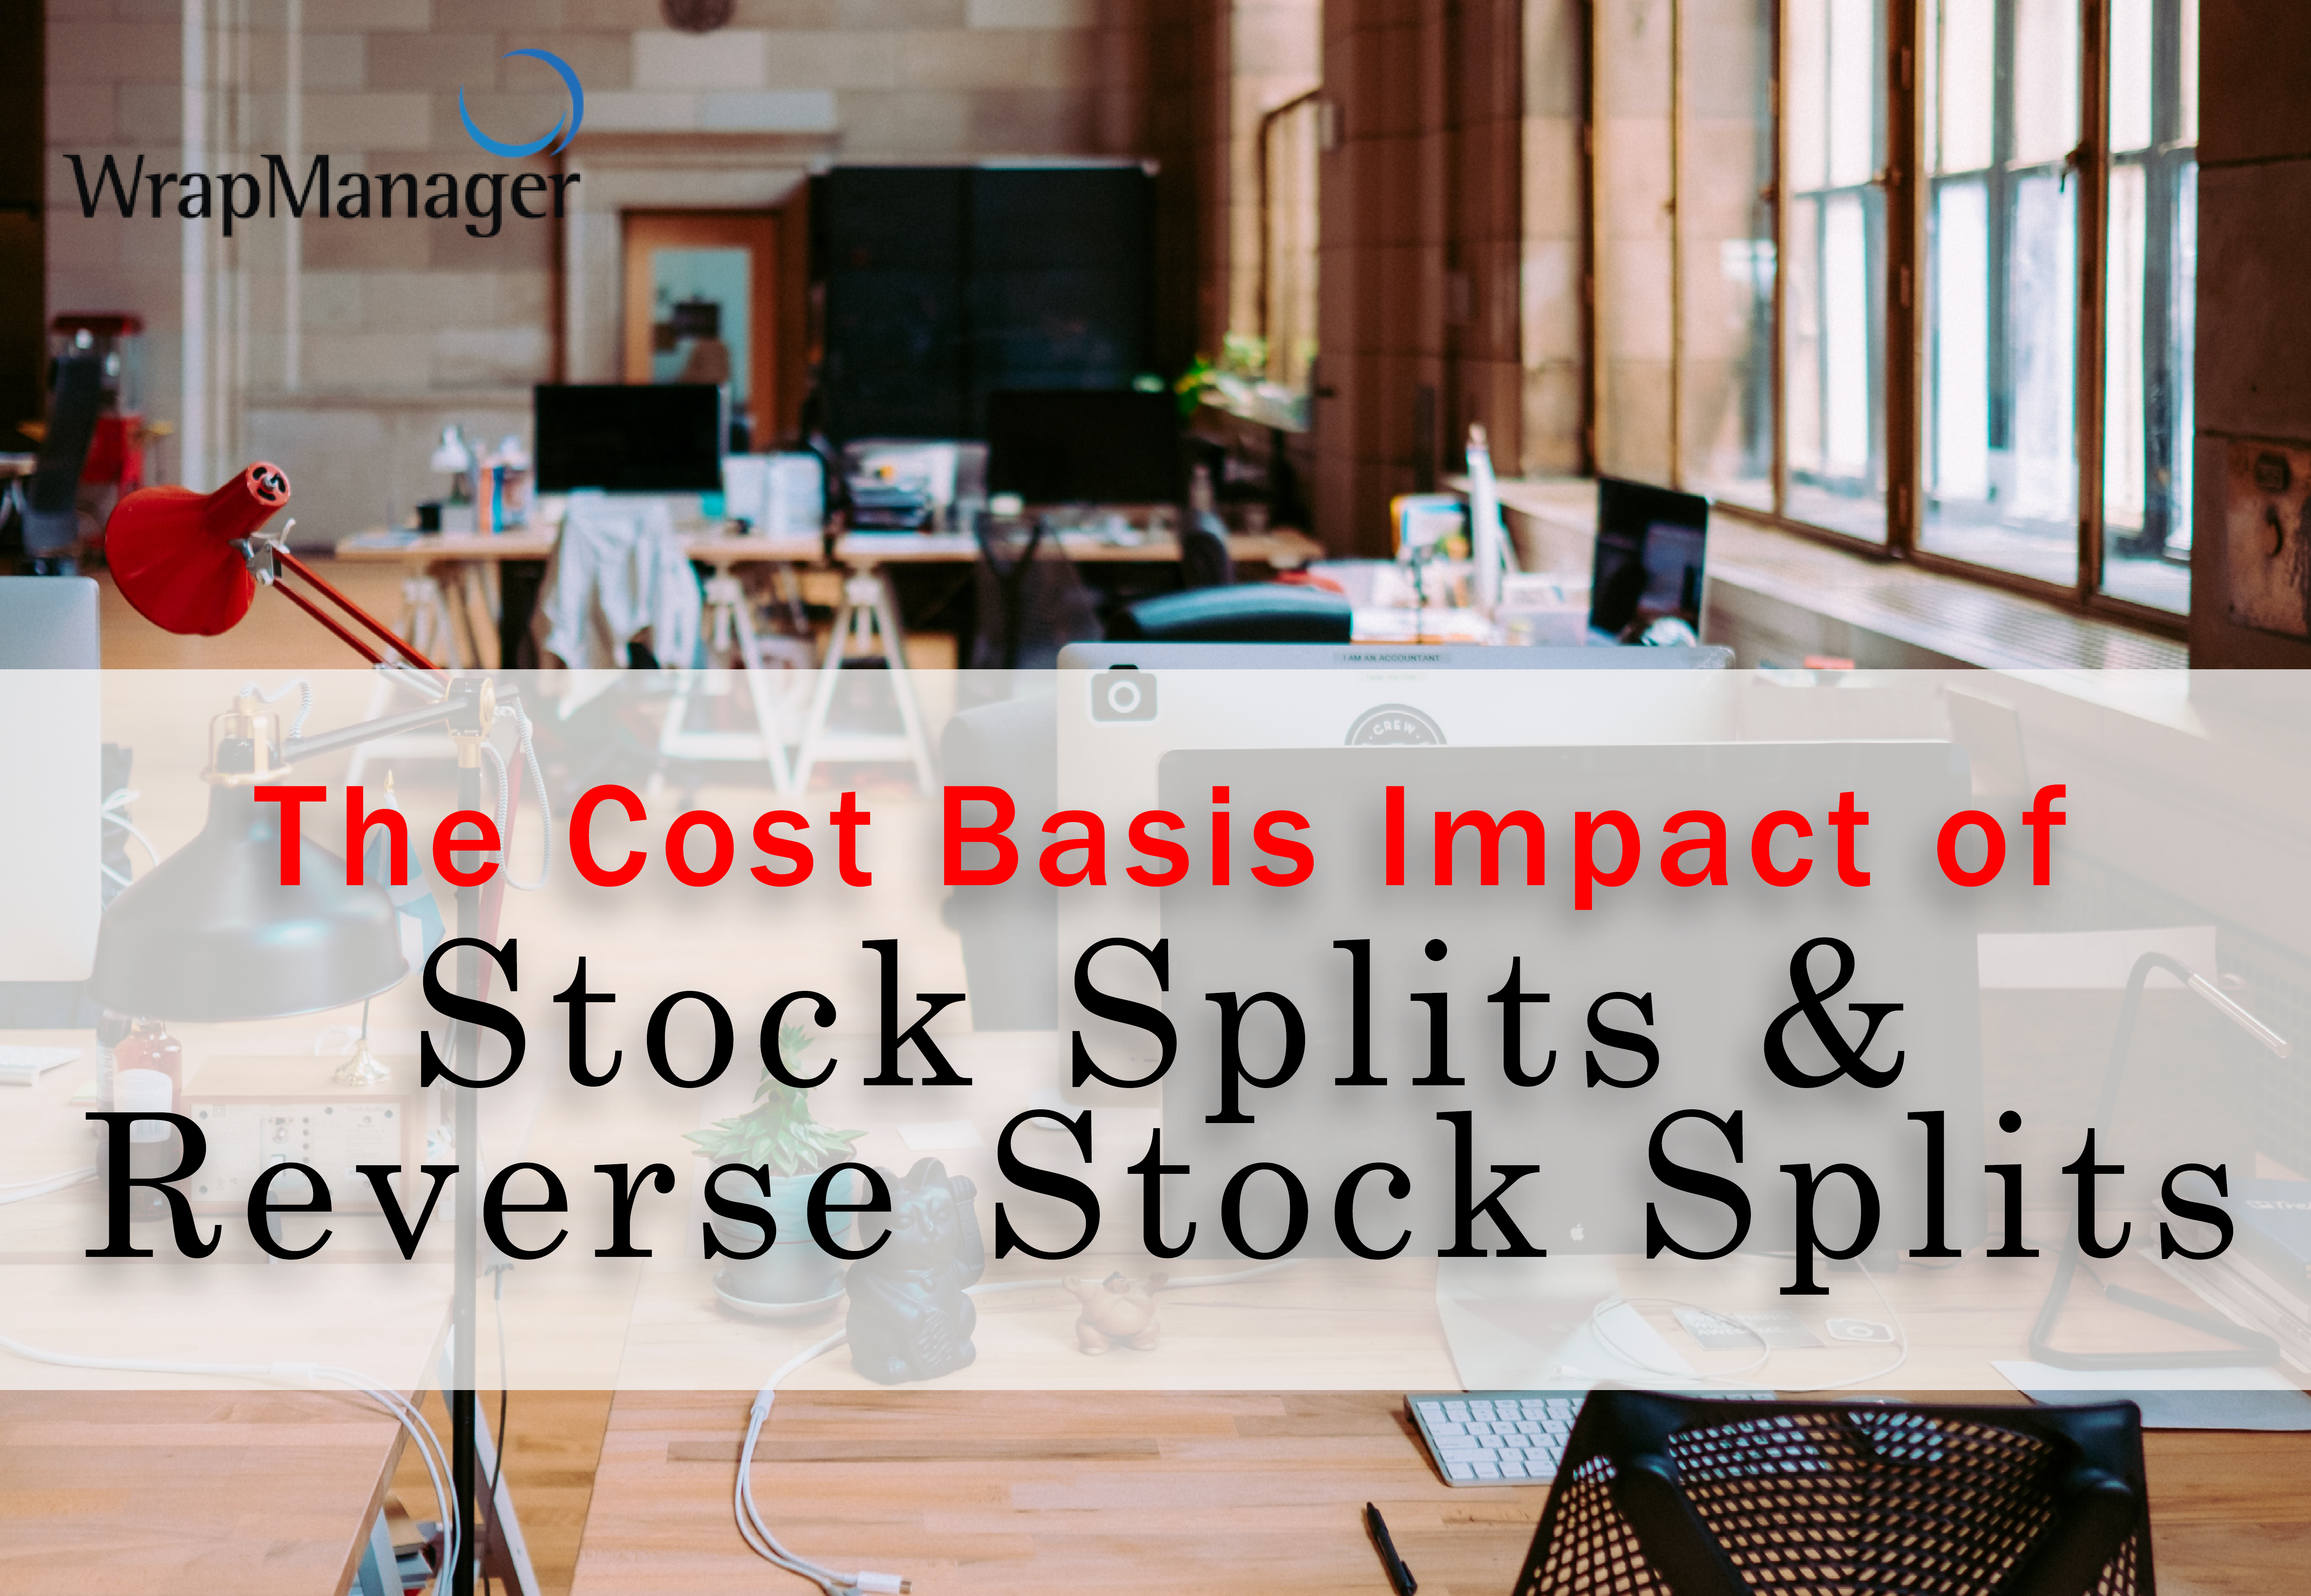 How Does a Stock Split Impact the Cost Basis of Shares? – Doug's Quiz Corner